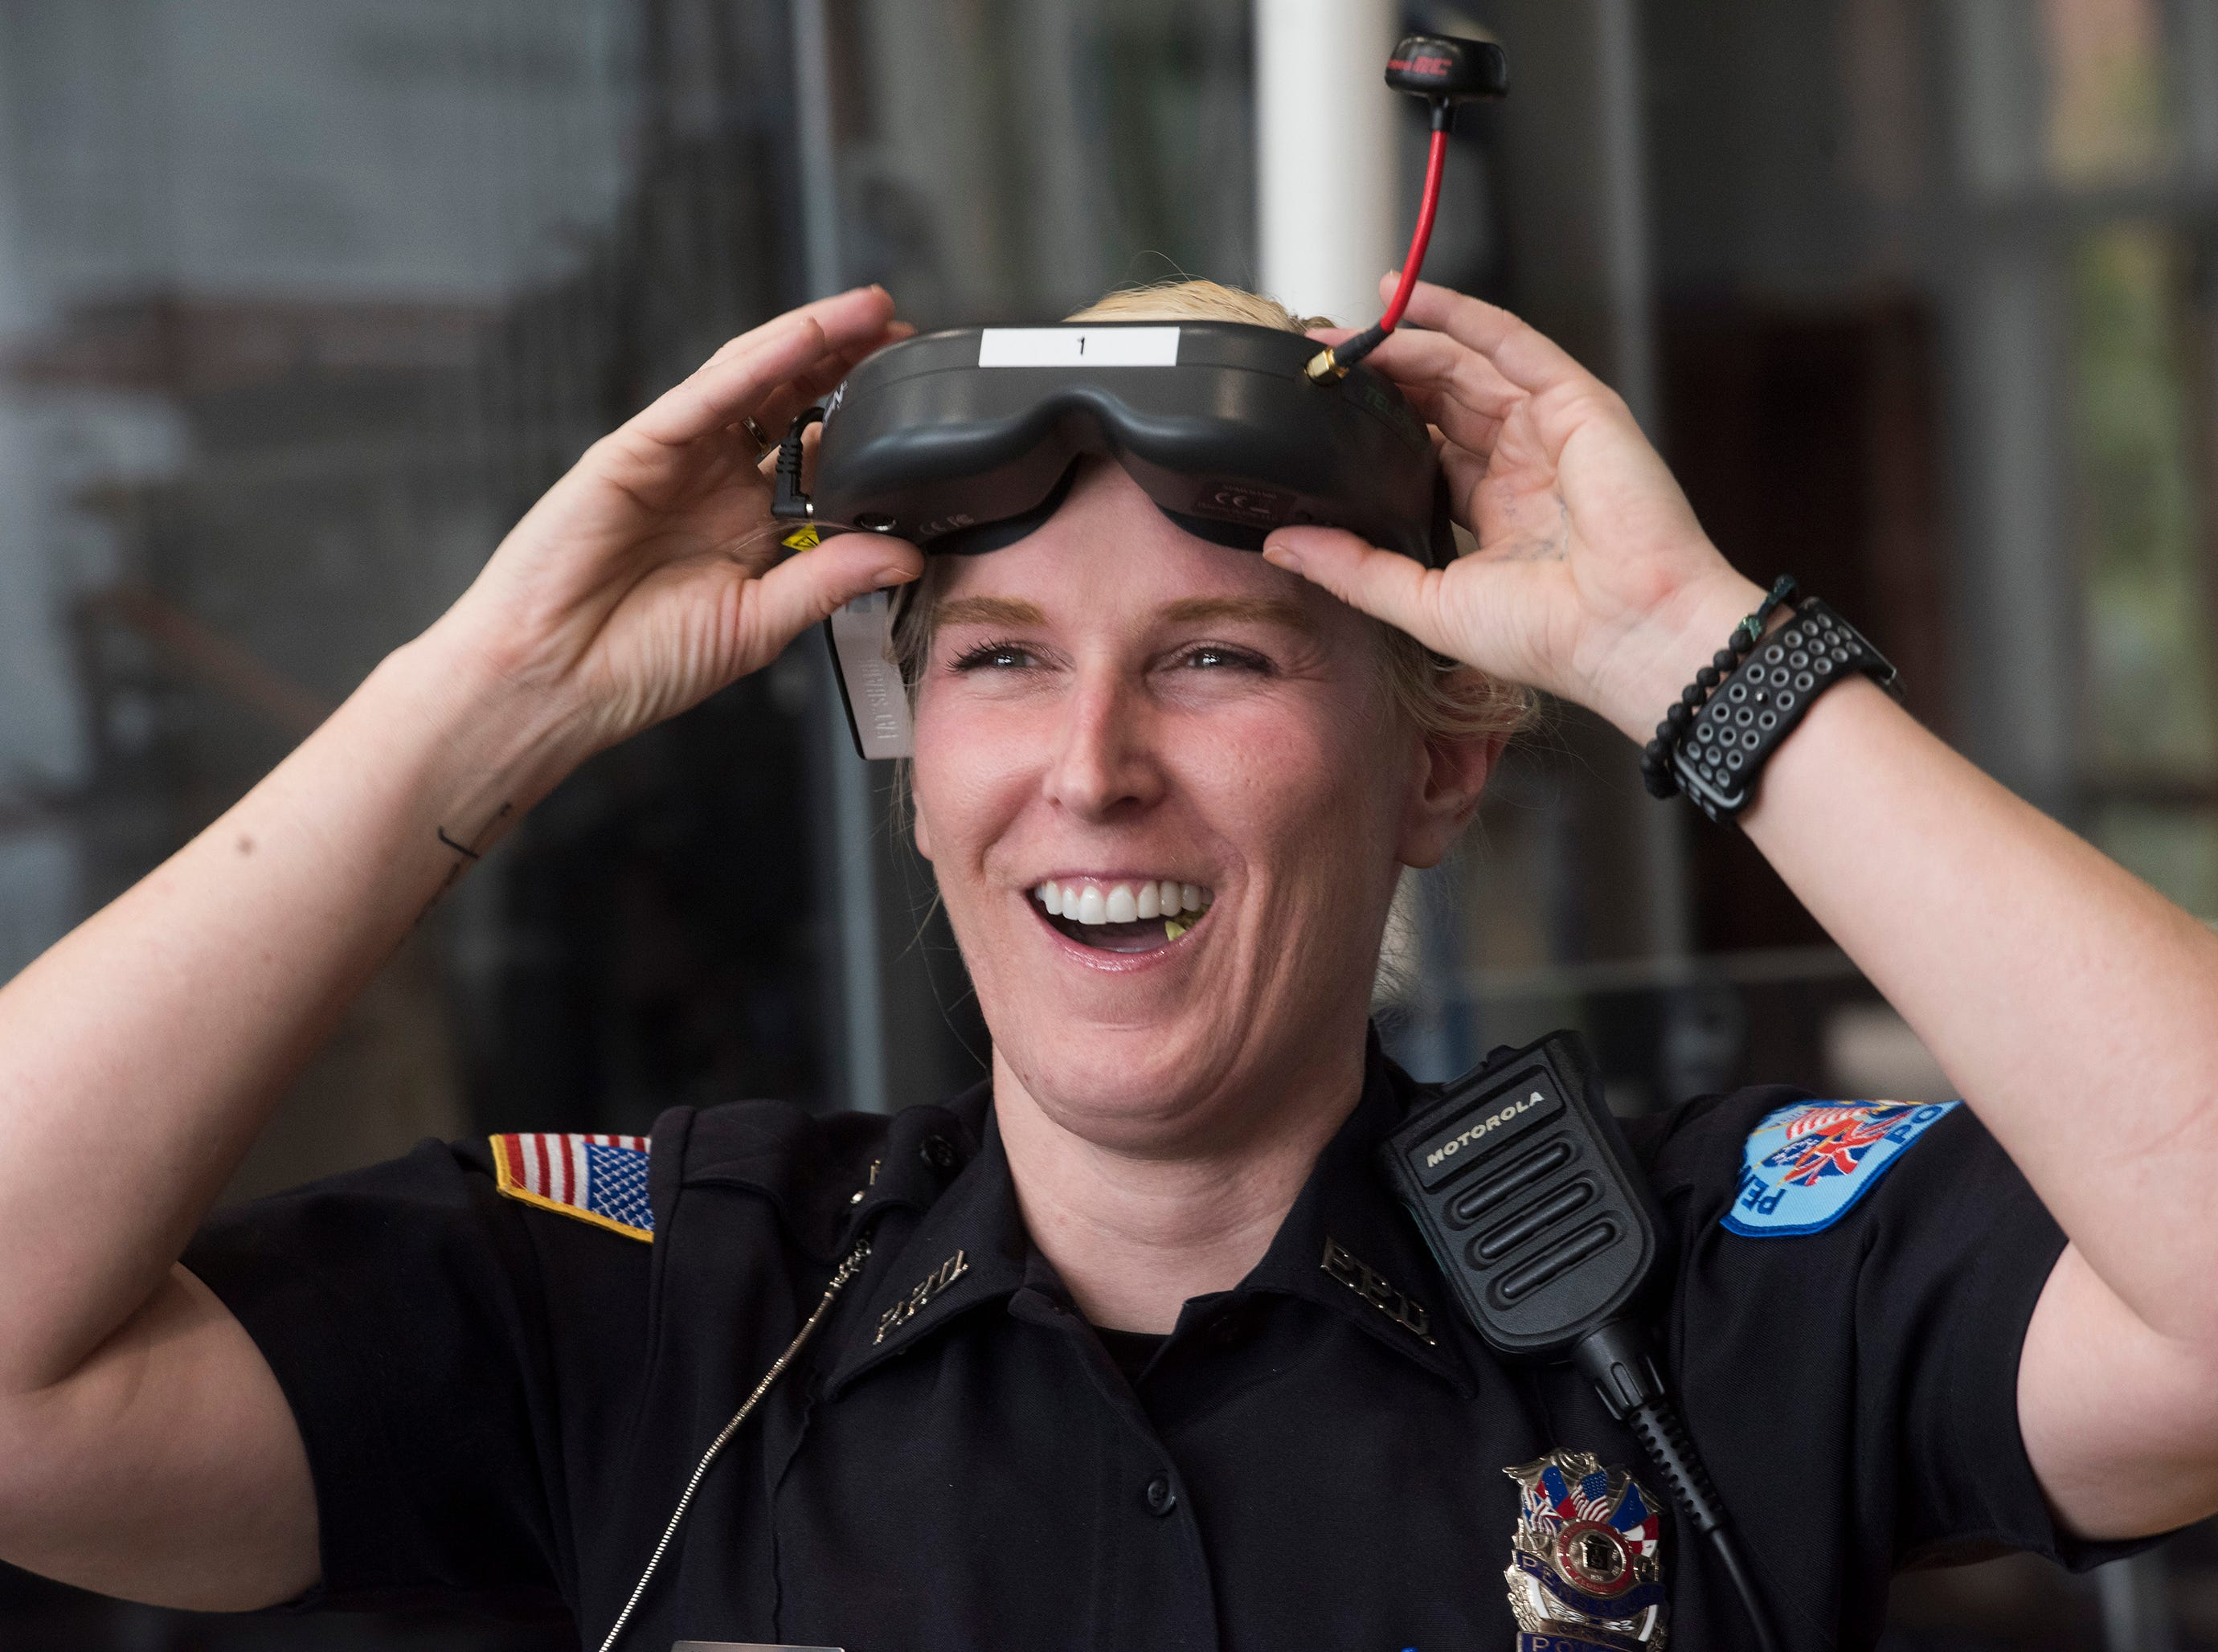 Pensacola Police Department Officer Kelly Eierhart reacts to seeing a flight demonstration from a drone at the Institute of Human and Machine Cognition on Thursday, Aug. 16, 2018.